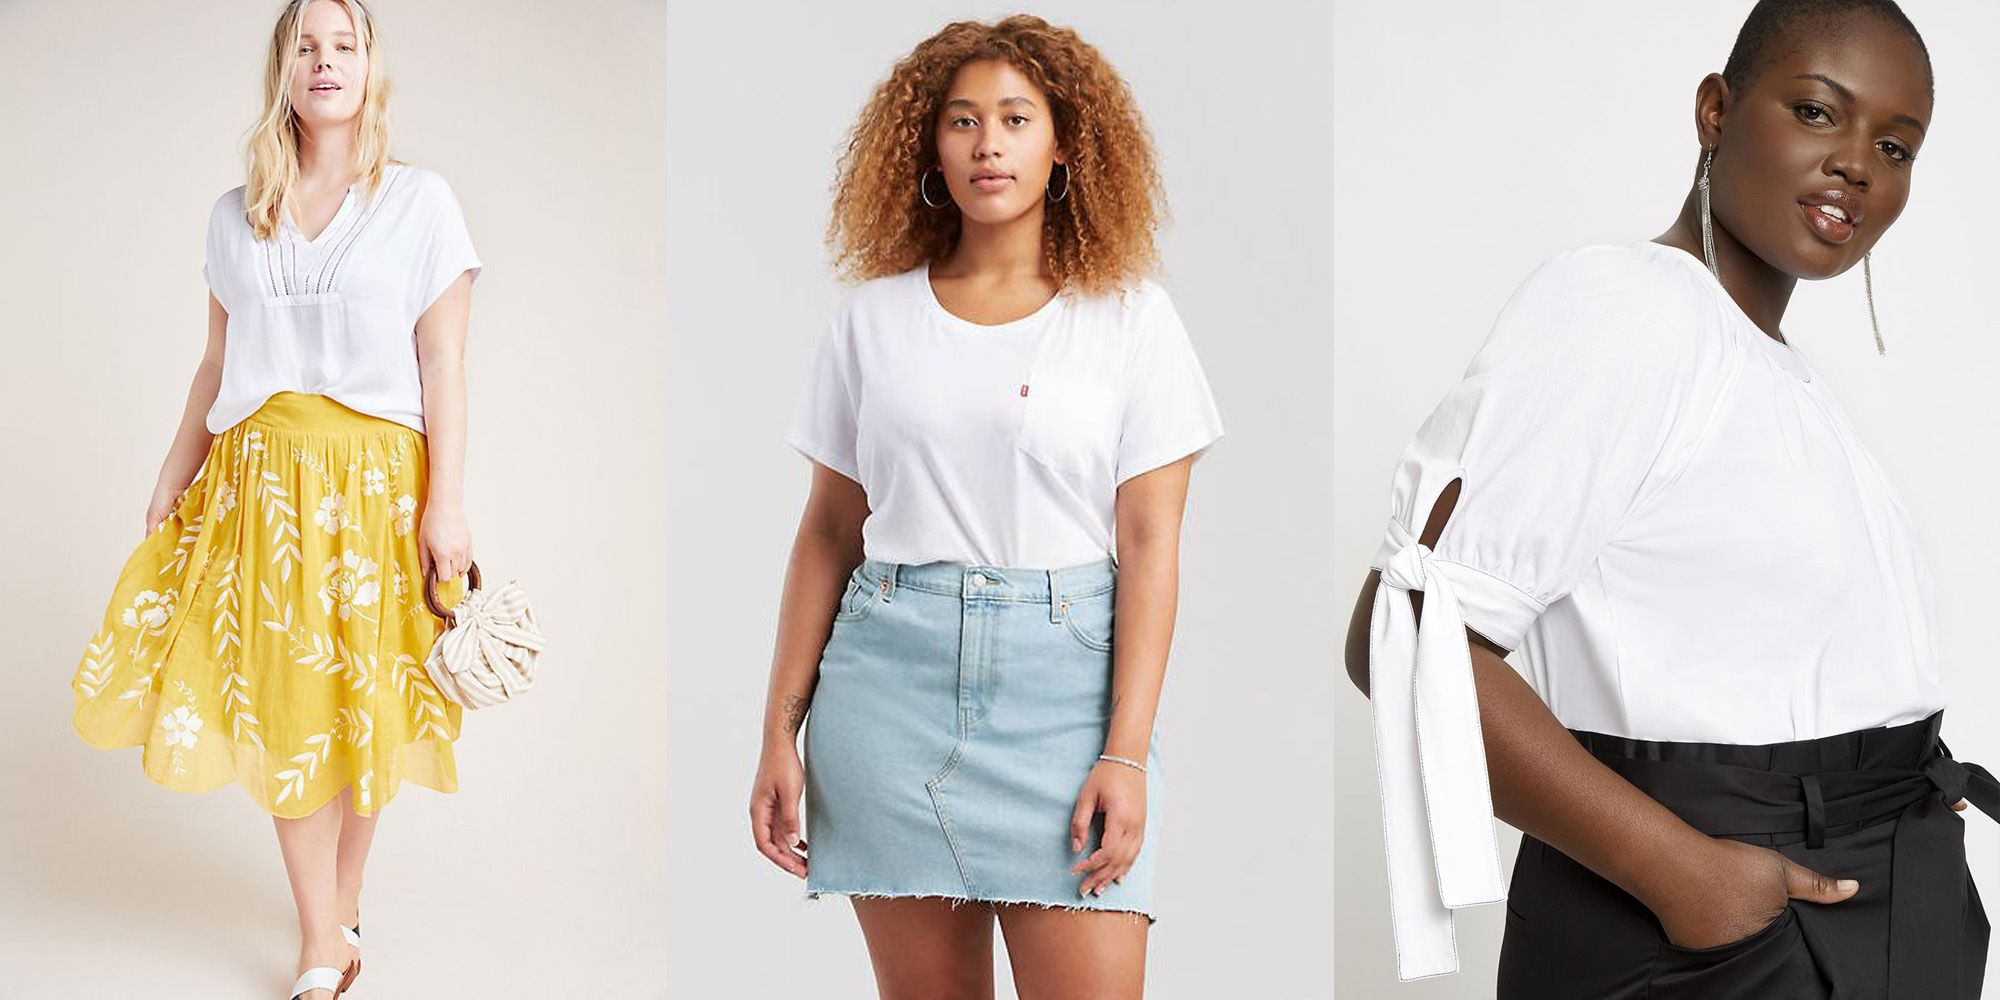 781b6319db The 17 Best White T-Shirts for Women - Cute White Tees for Summer